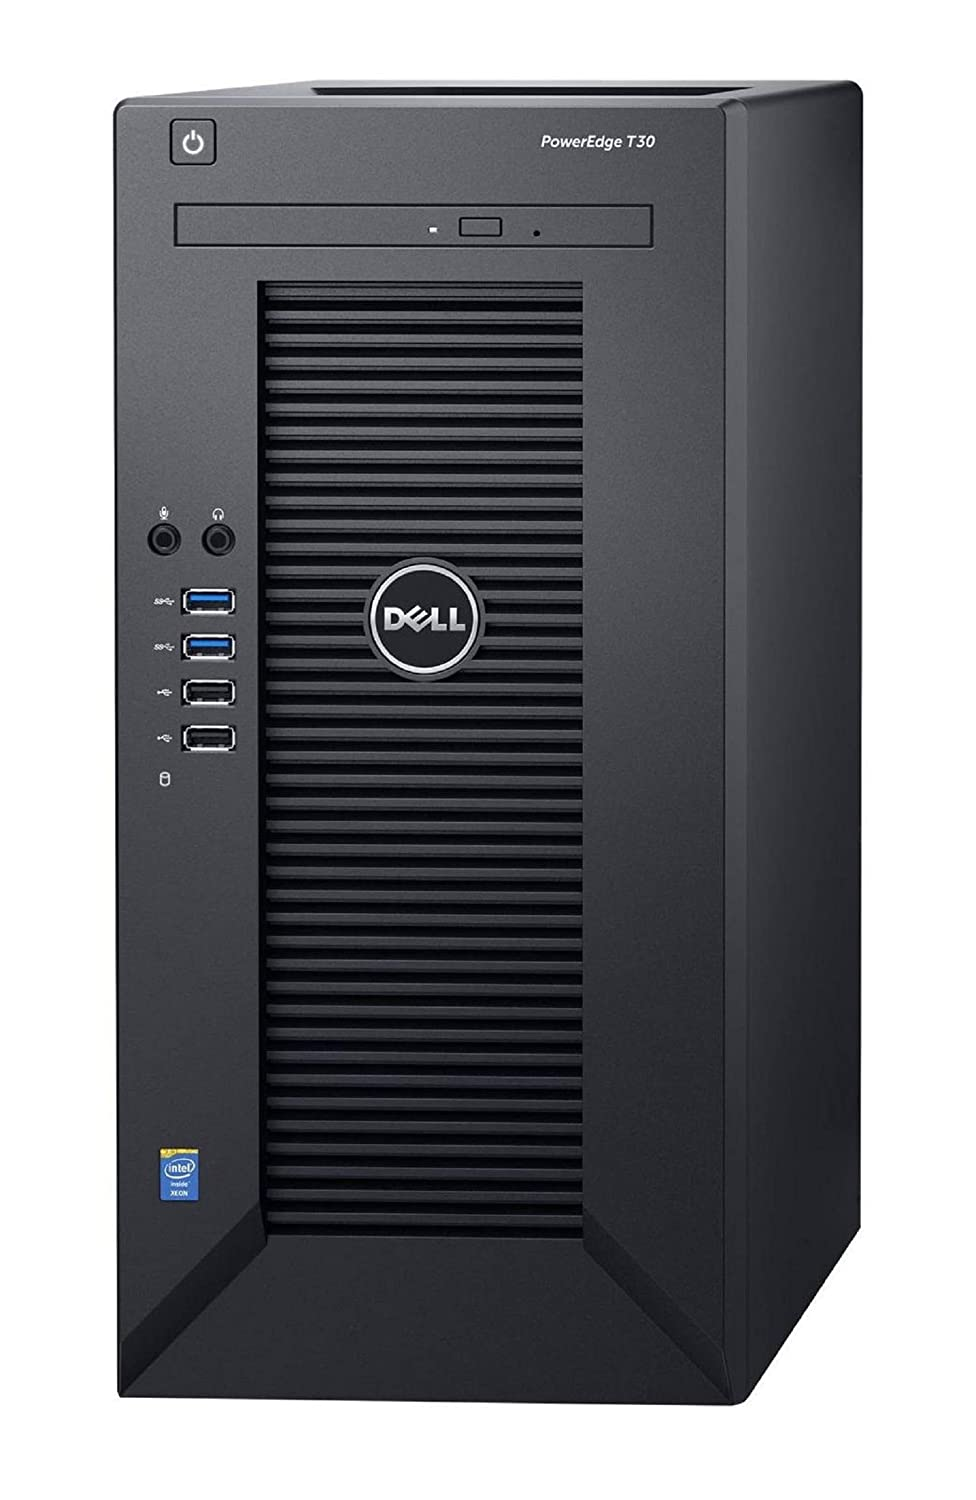 衝撃特価 ME2 MichaelElectronics2 Dell PowerEdge T30プレミアムミニタワーデスクトップサーバー(intelXeonプロセッサE3-1225(3.3 GHz)クアッドコアプロセッサ、64GBRAM RAM、6TB 512GB + HDD + 2TBSATA SSD、DVD、Windowsプロ10) B07L8LYM45 512GB SSD 512GB SSD|8GB RAM, Granbeat:1cc675bd --- arianechie.dominiotemporario.com